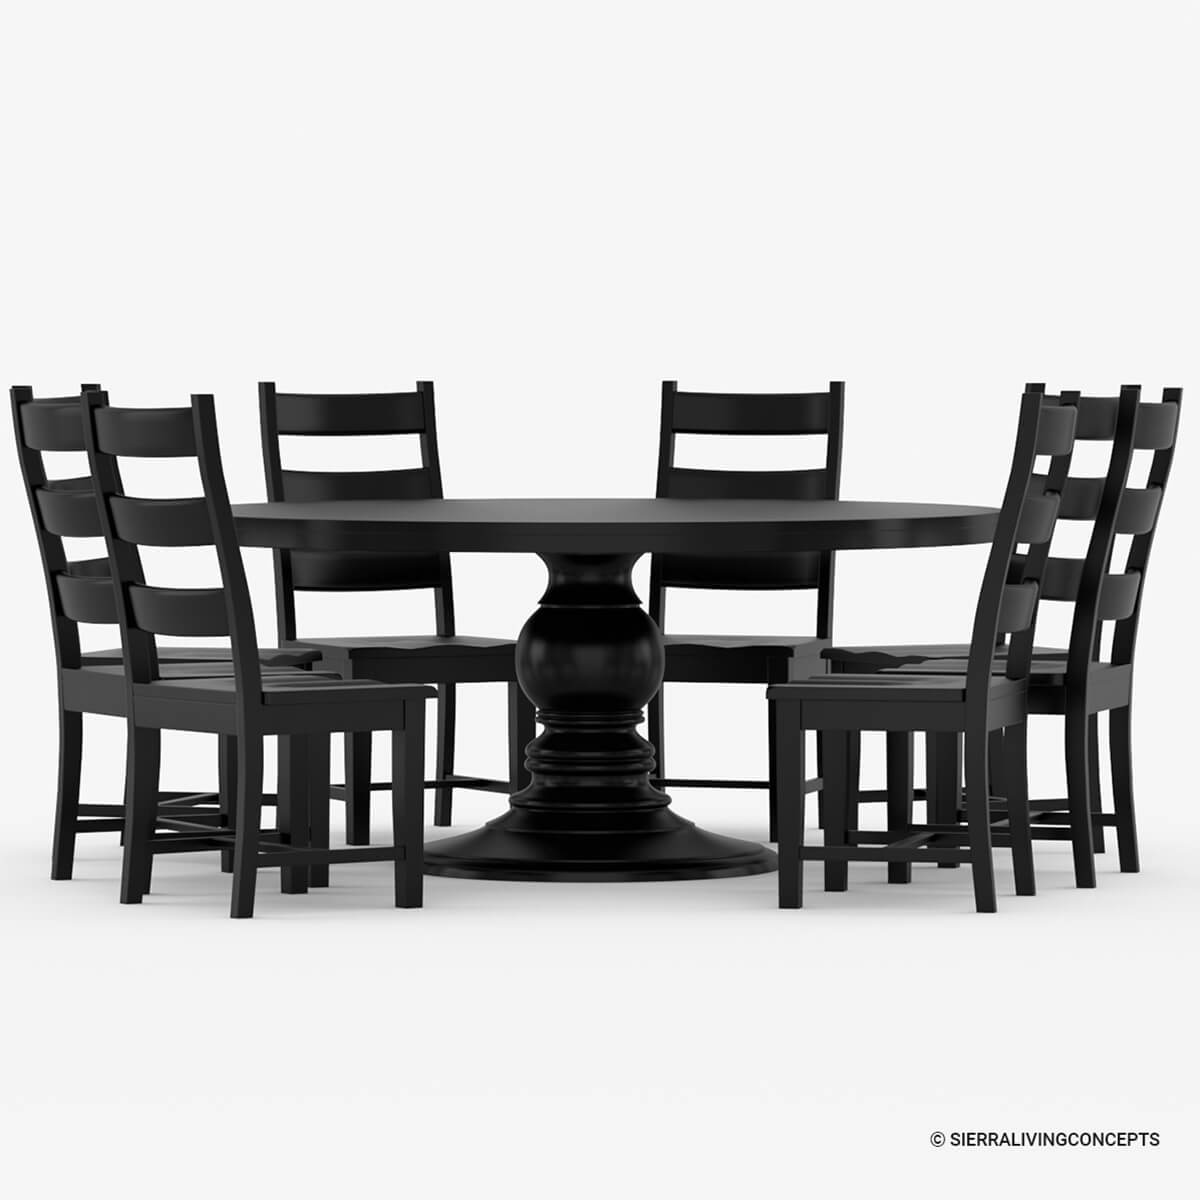 Nottingham Rustic Solid Wood Black Round Dining Room Table Set : 71193 from www.sierralivingconcepts.com size 1200 x 1200 jpeg 414kB